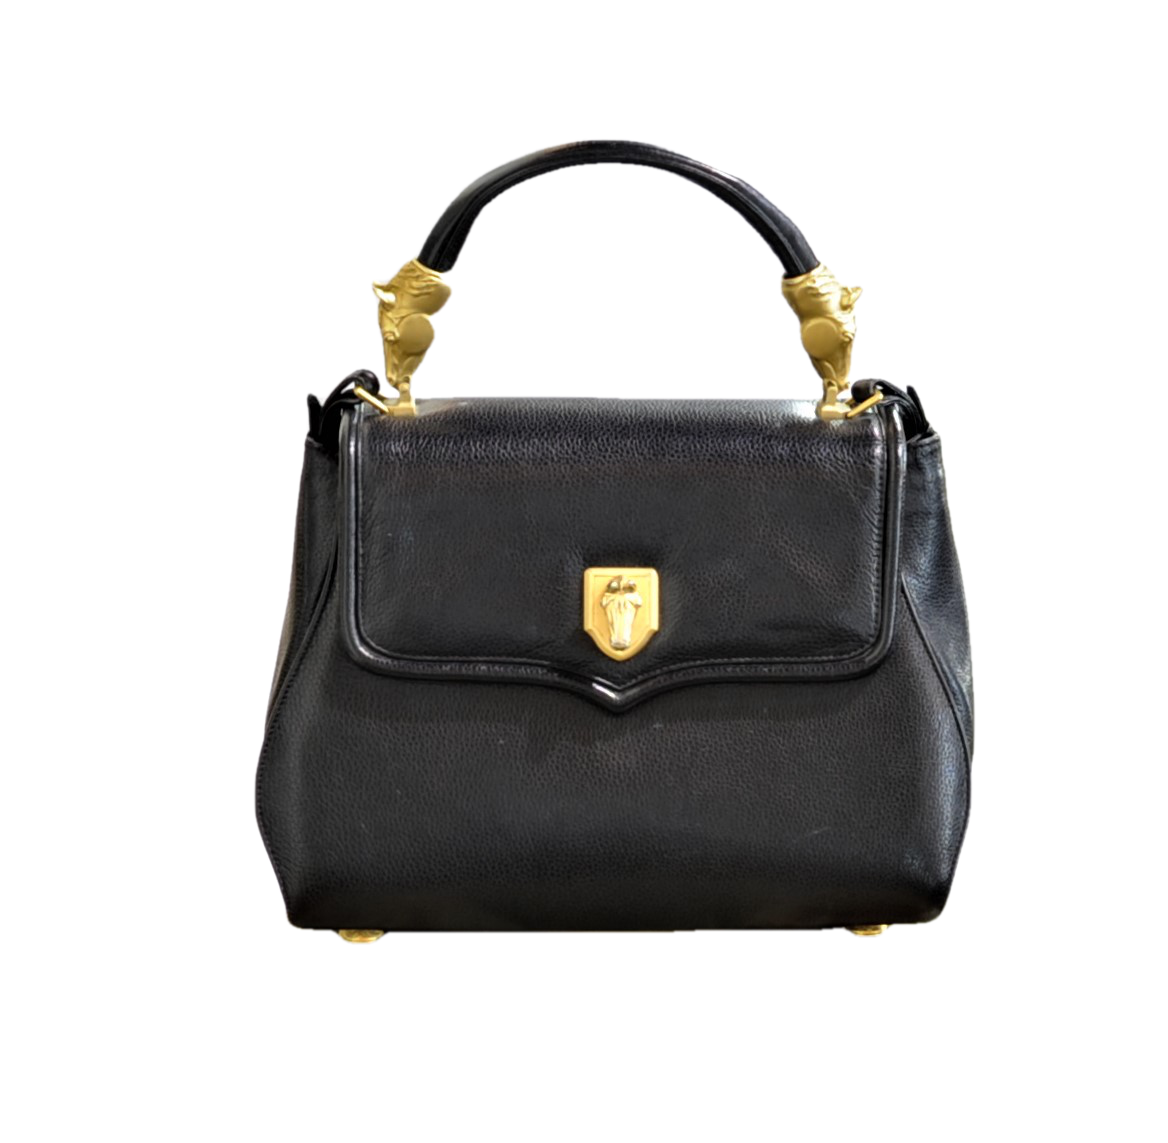 Rare Vincenza Black Leather and Gilt Bronze Equestrian Handbag